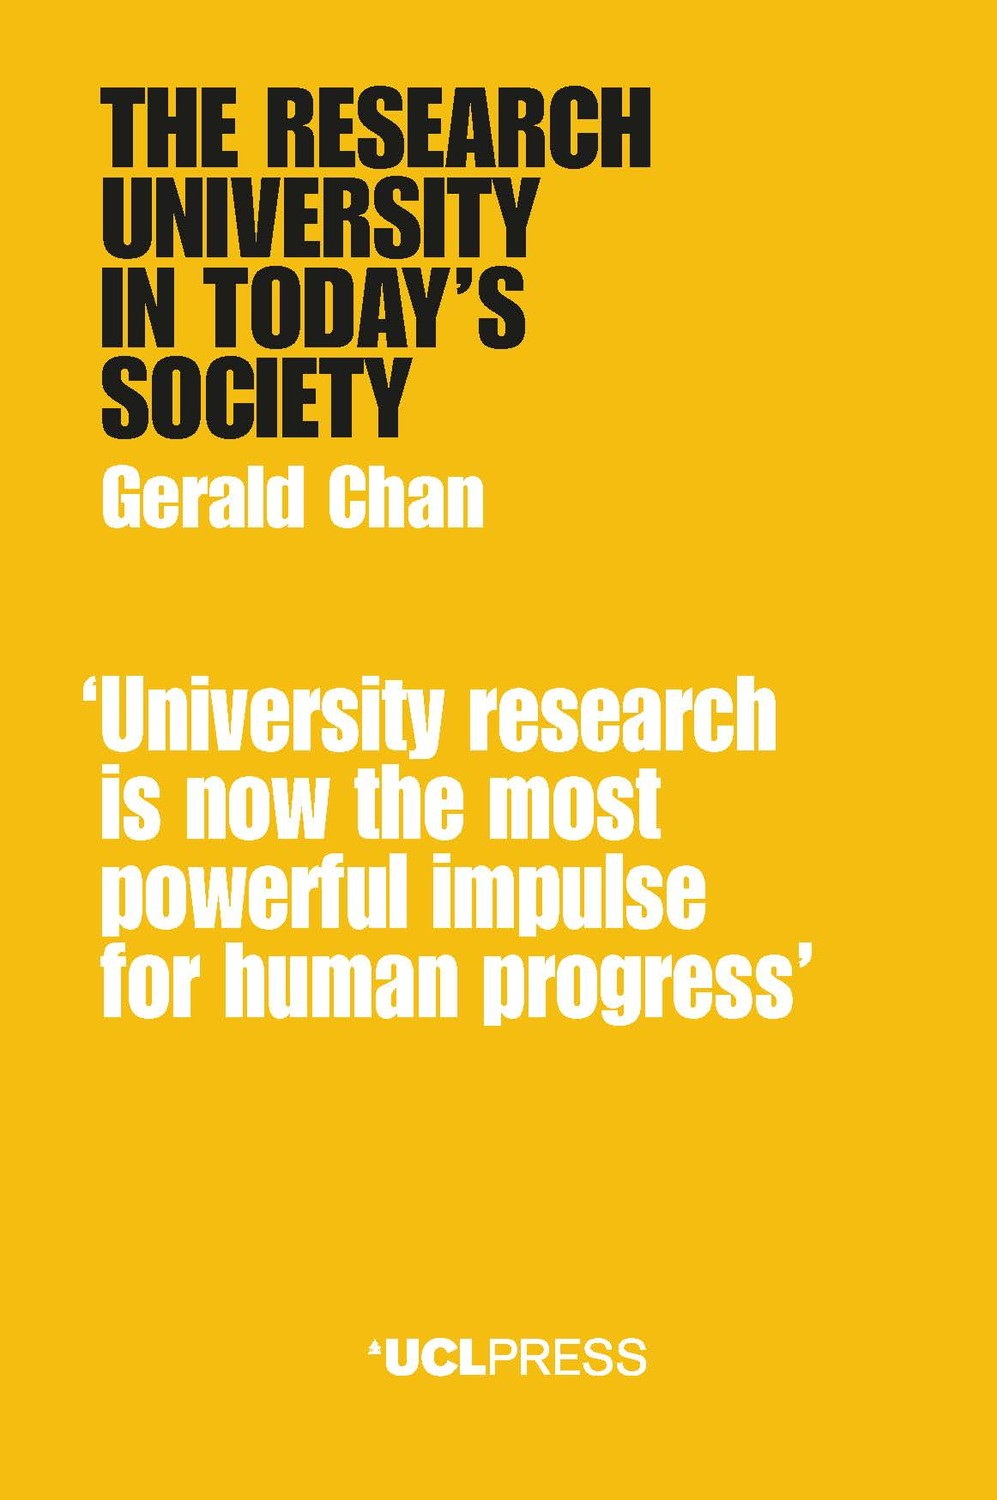 The Research University in Today's Society